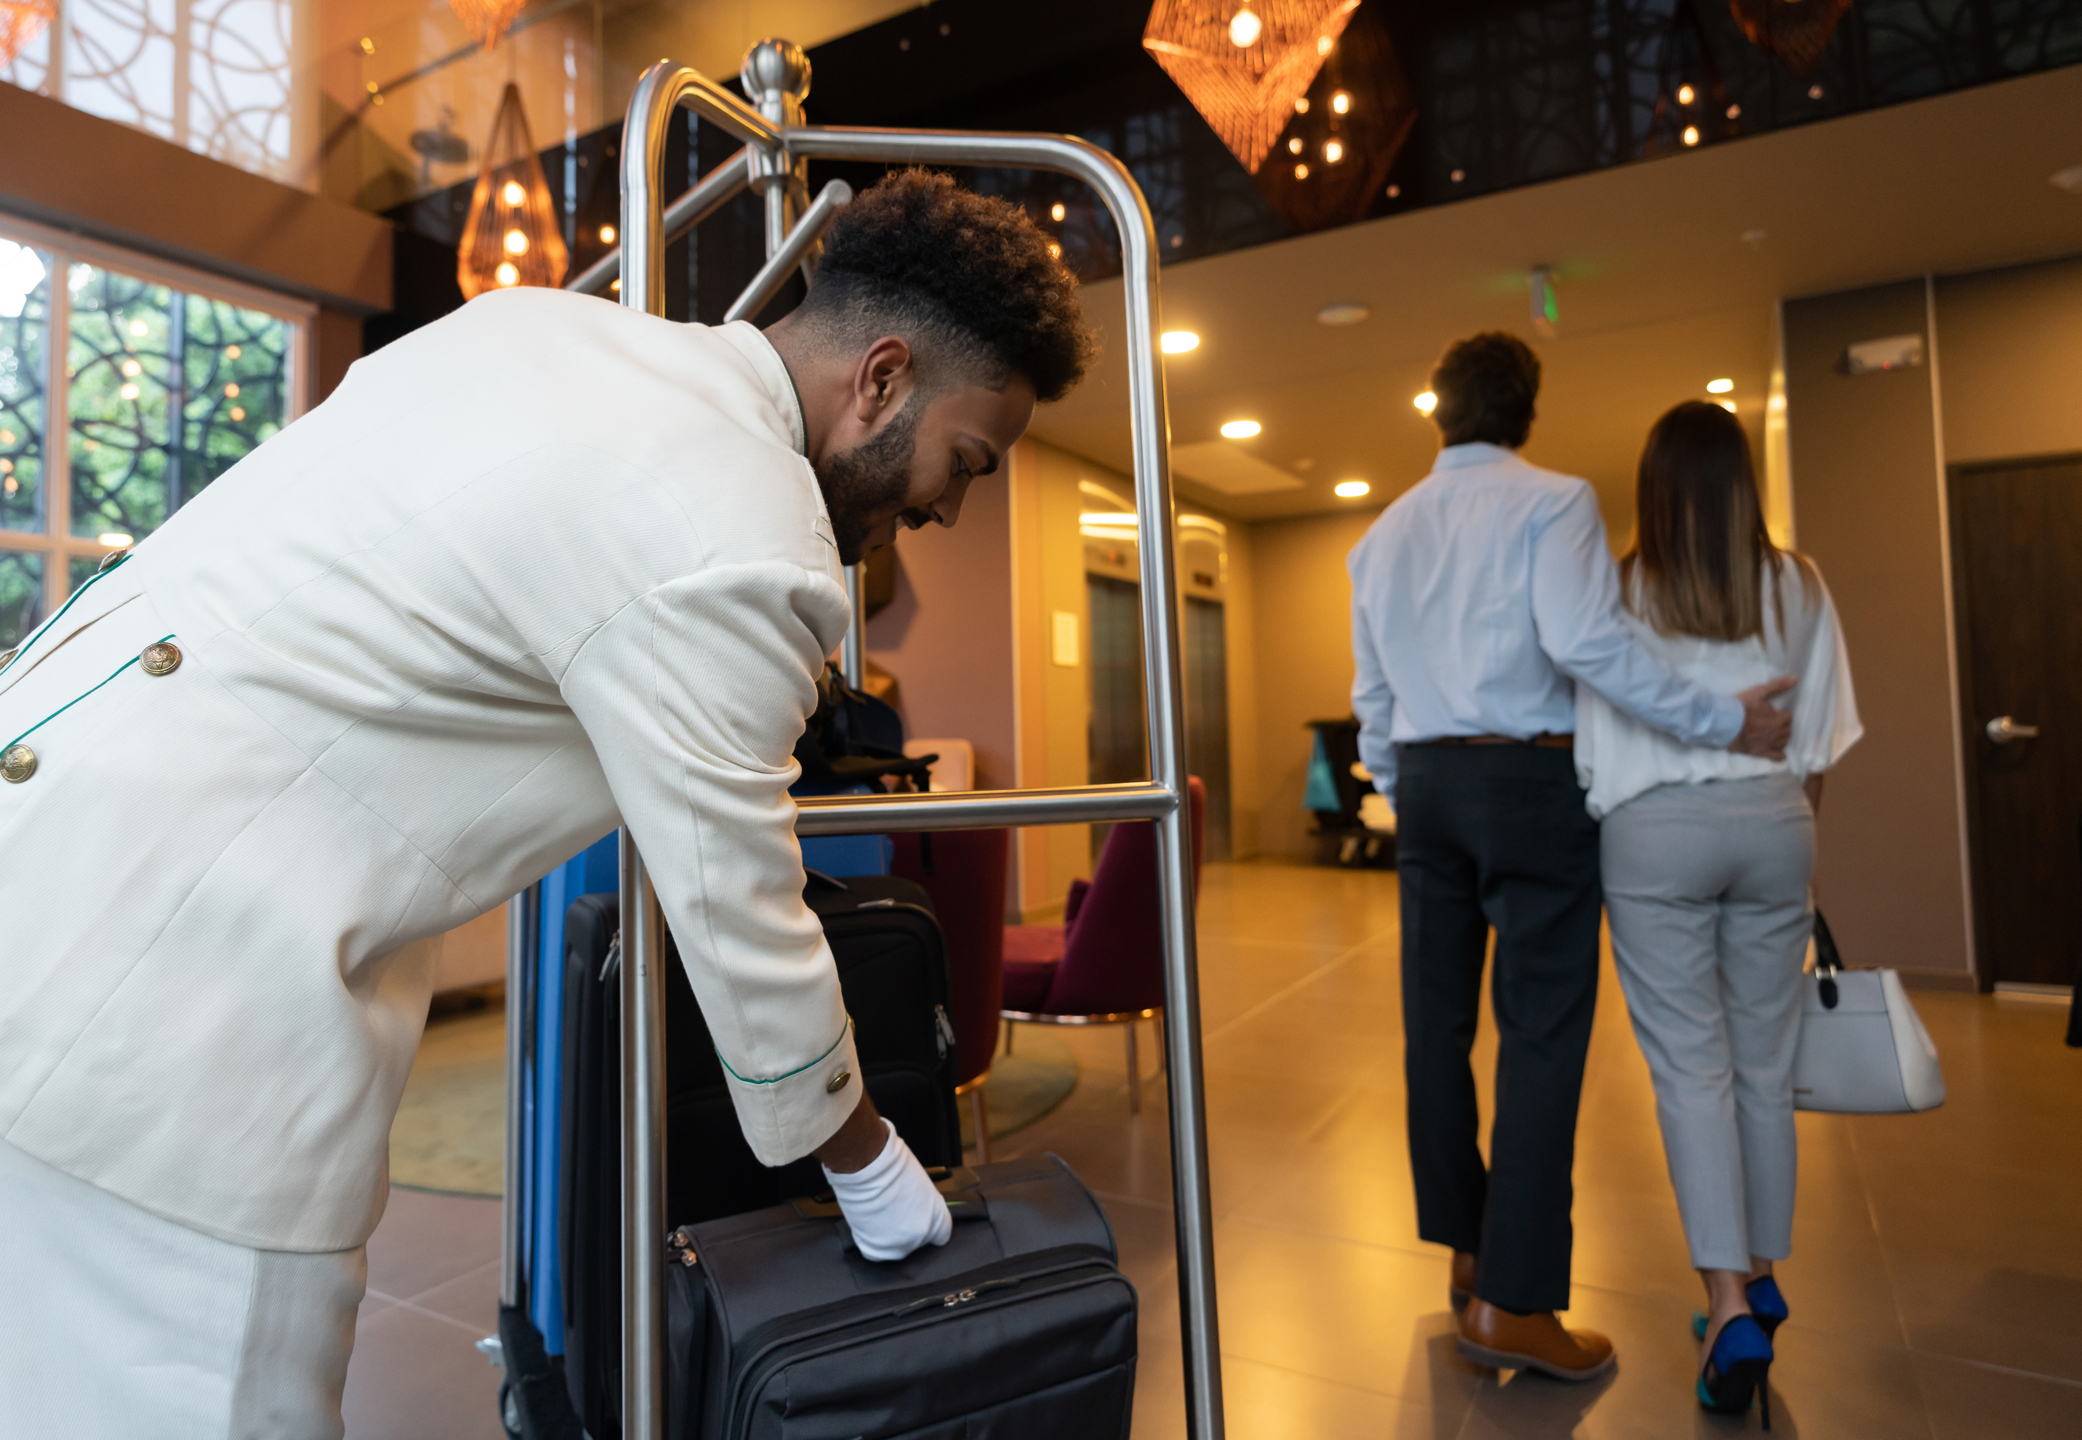 Employee Bellhop Providing Customer Service By Helping Customers With Luggage at a Hotel